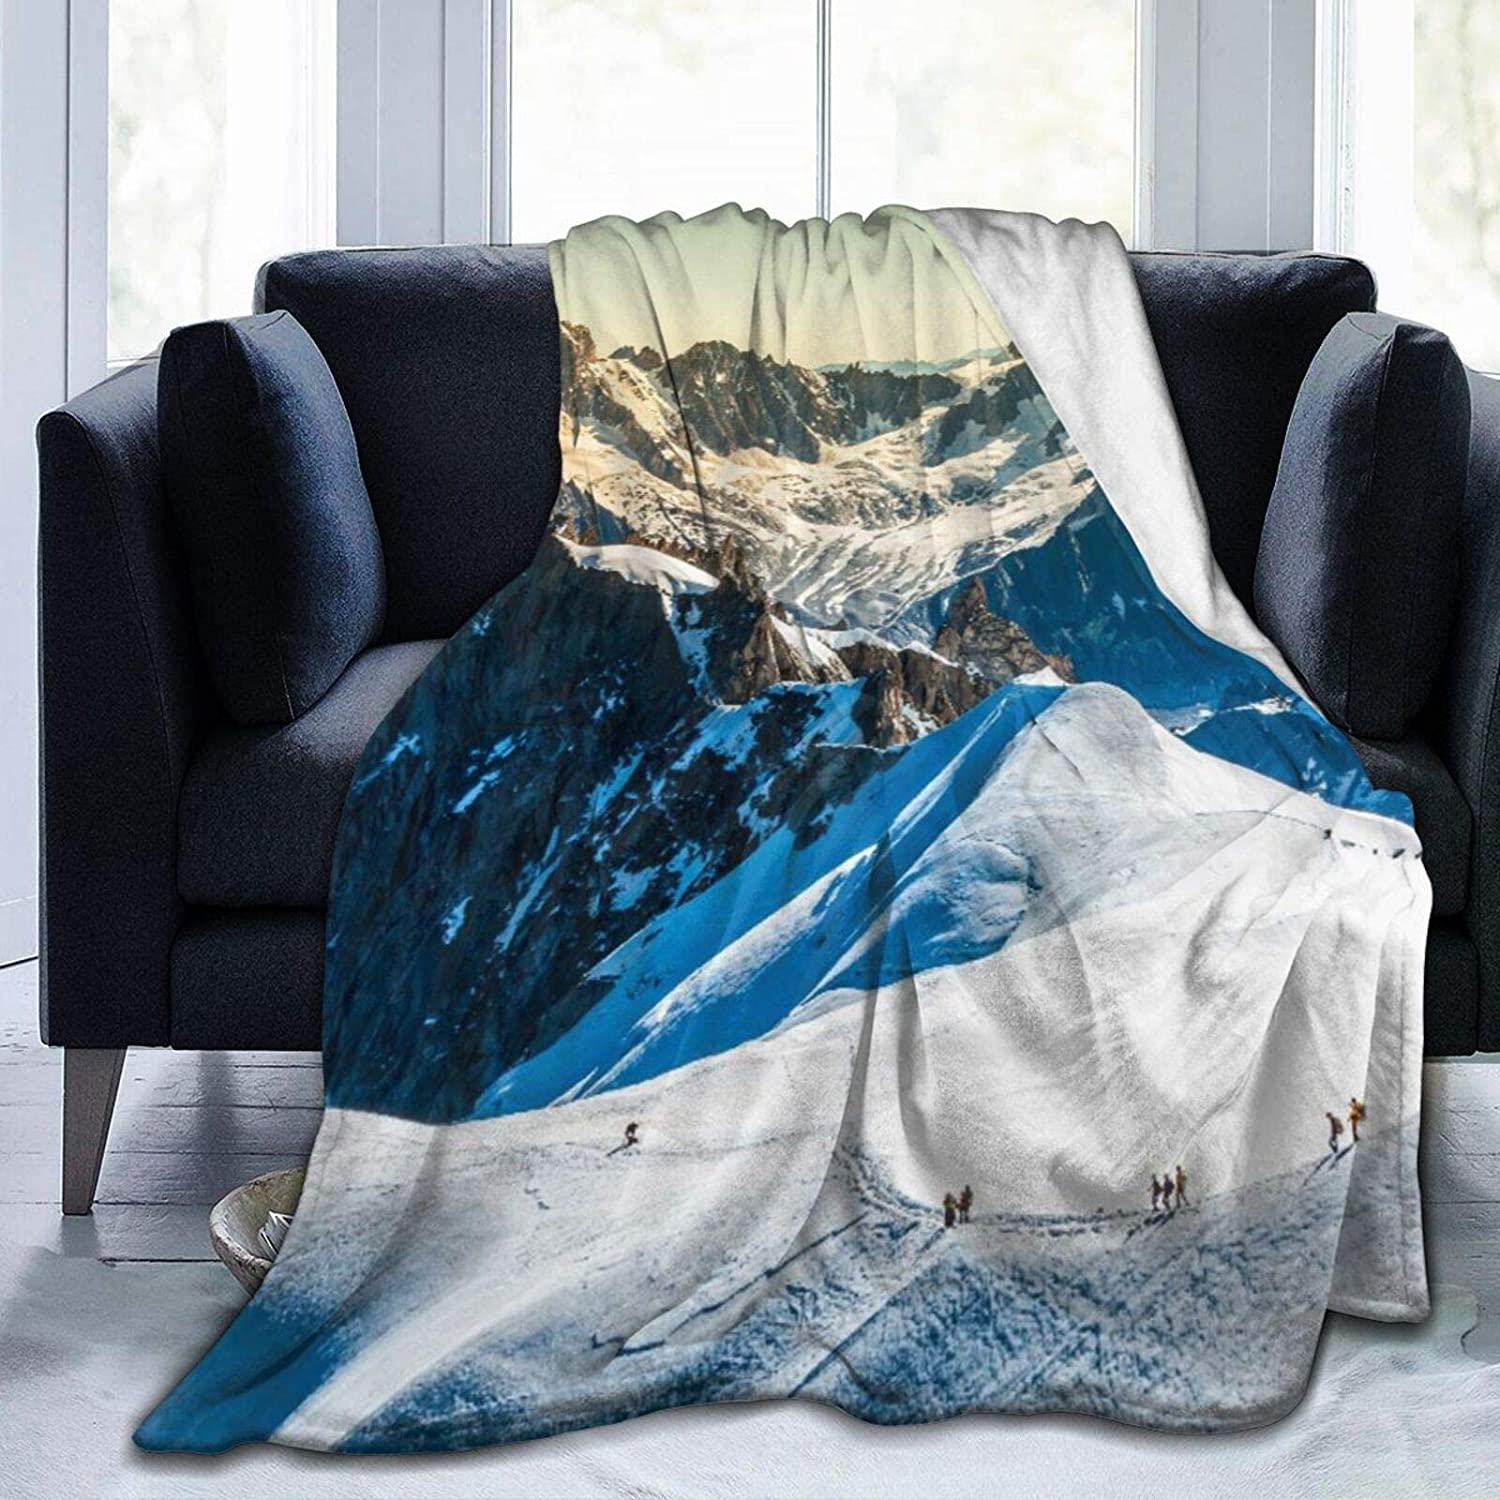 YOLIKA Super beauty product restock quality top! Comfortable Manufacturer direct delivery Ultra-Soft Micro Fleece Blanc Blanket Ch Mont